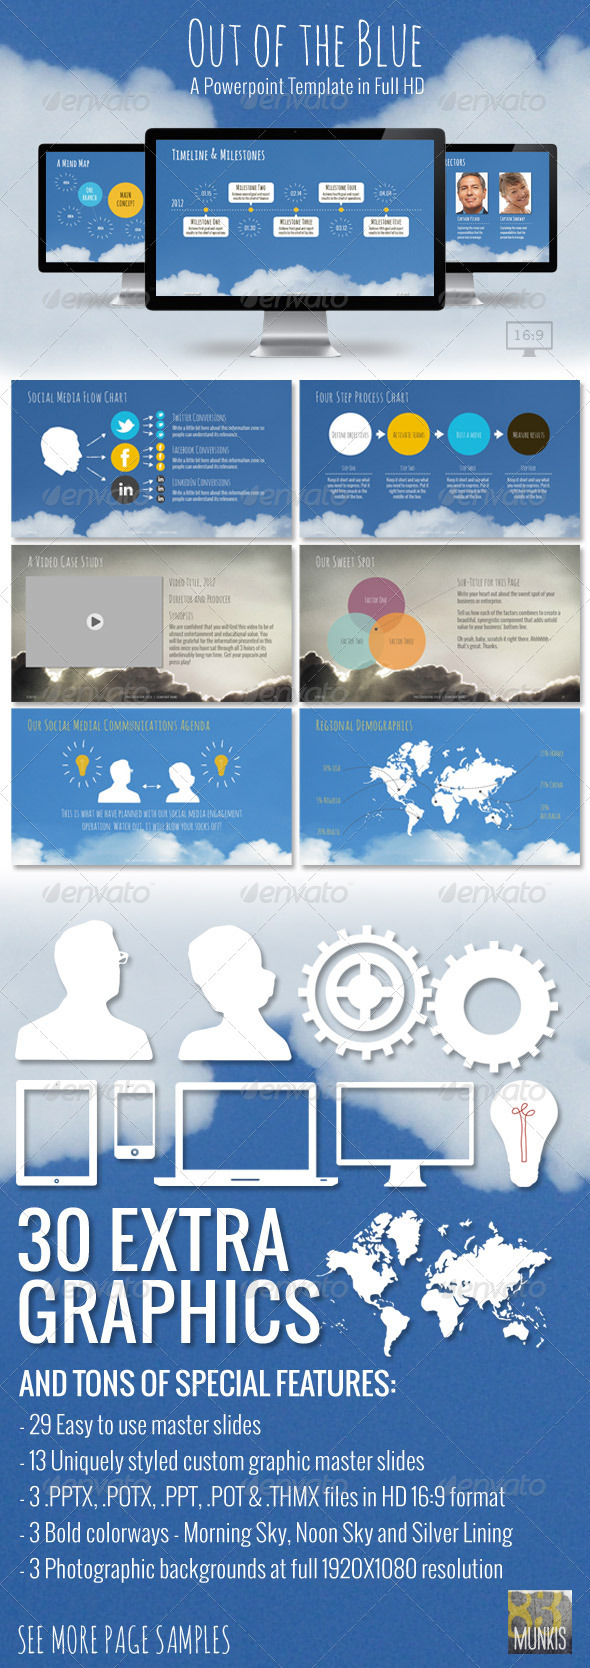 GraphicRiver Out of the Blue Powerpoint Presentation Template 2750081